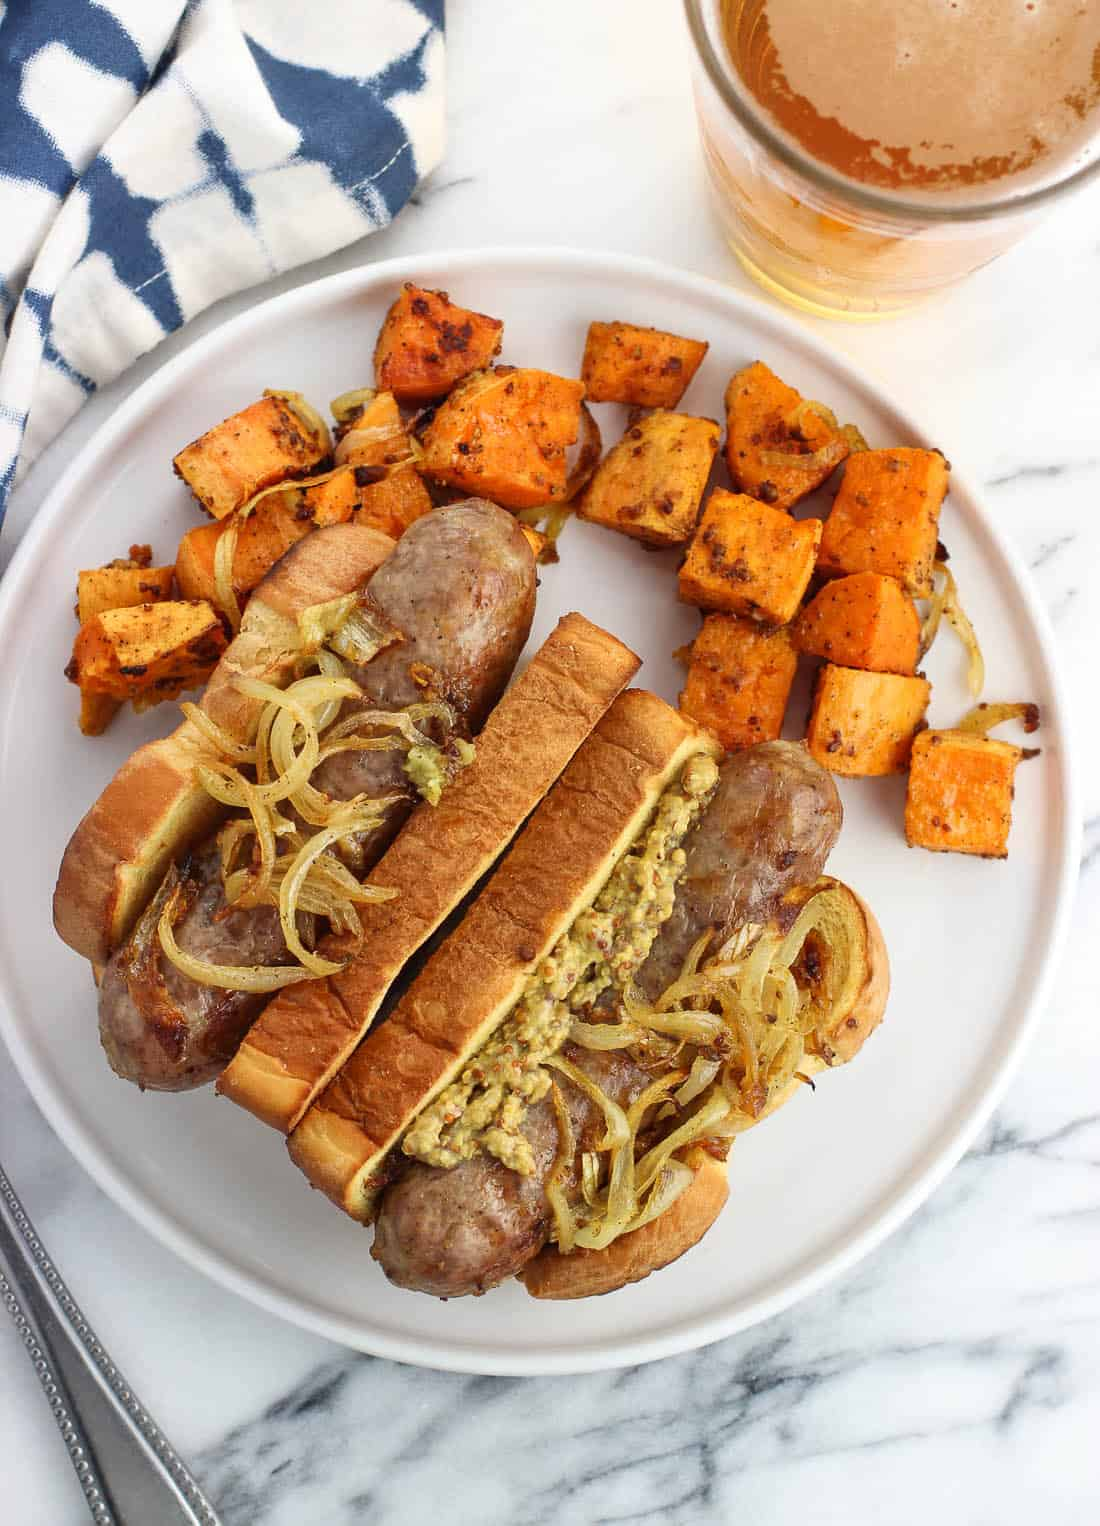 Two bratwursts and sweet potatoes on a plate next to a glass of beer.